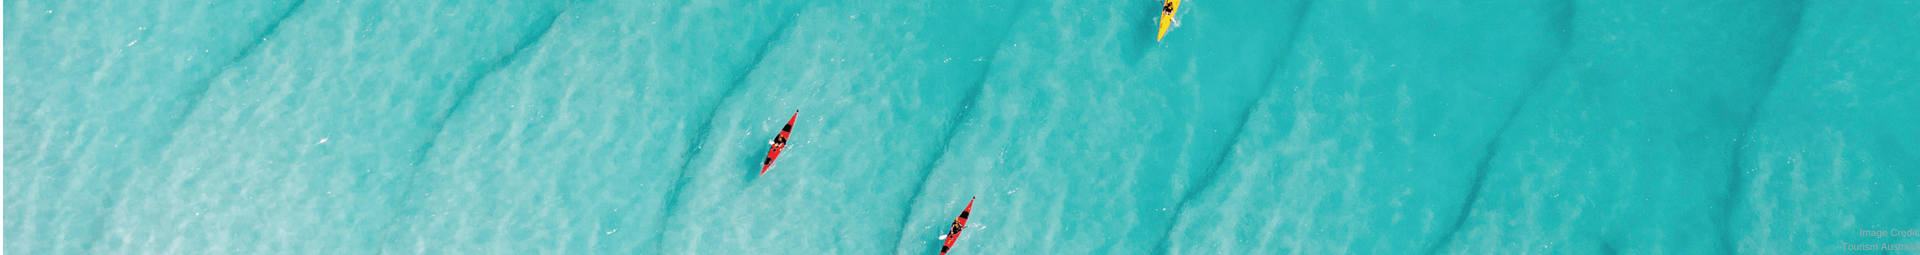 Kayaking at Whitehaven beach